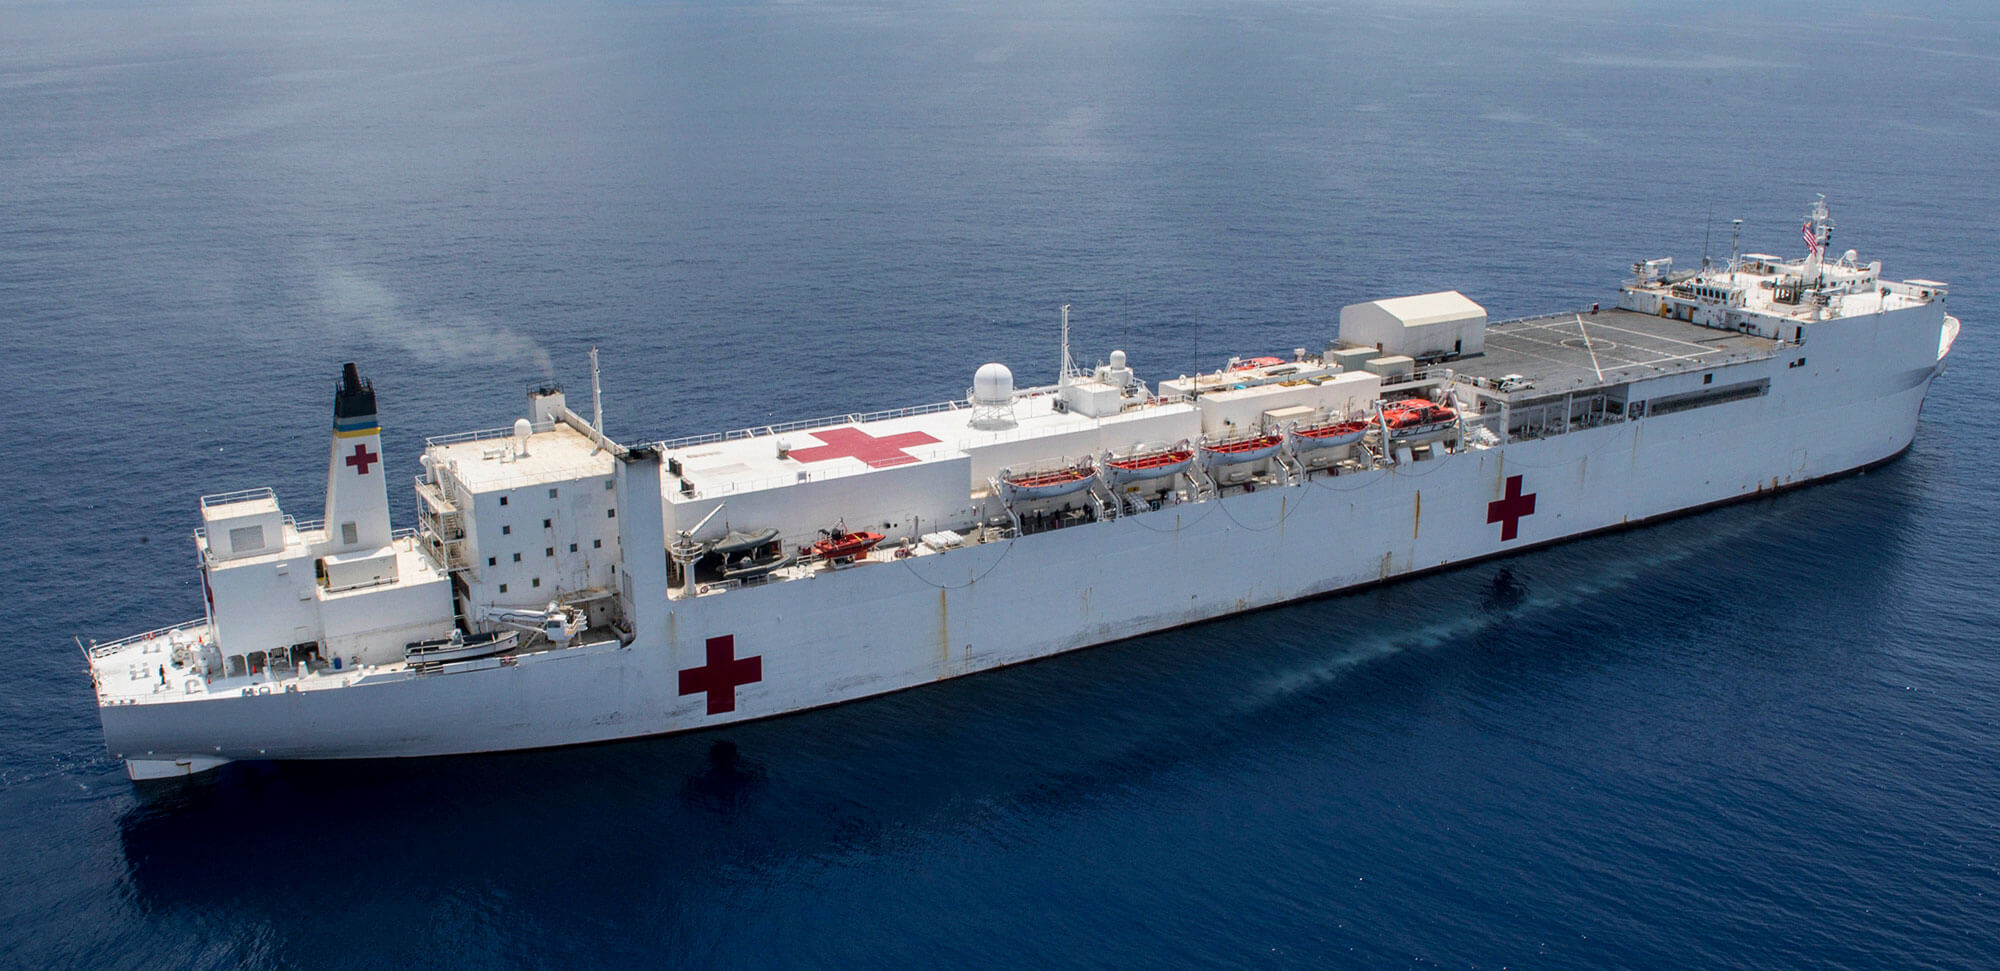 US Hospital ship - USNS Mercy